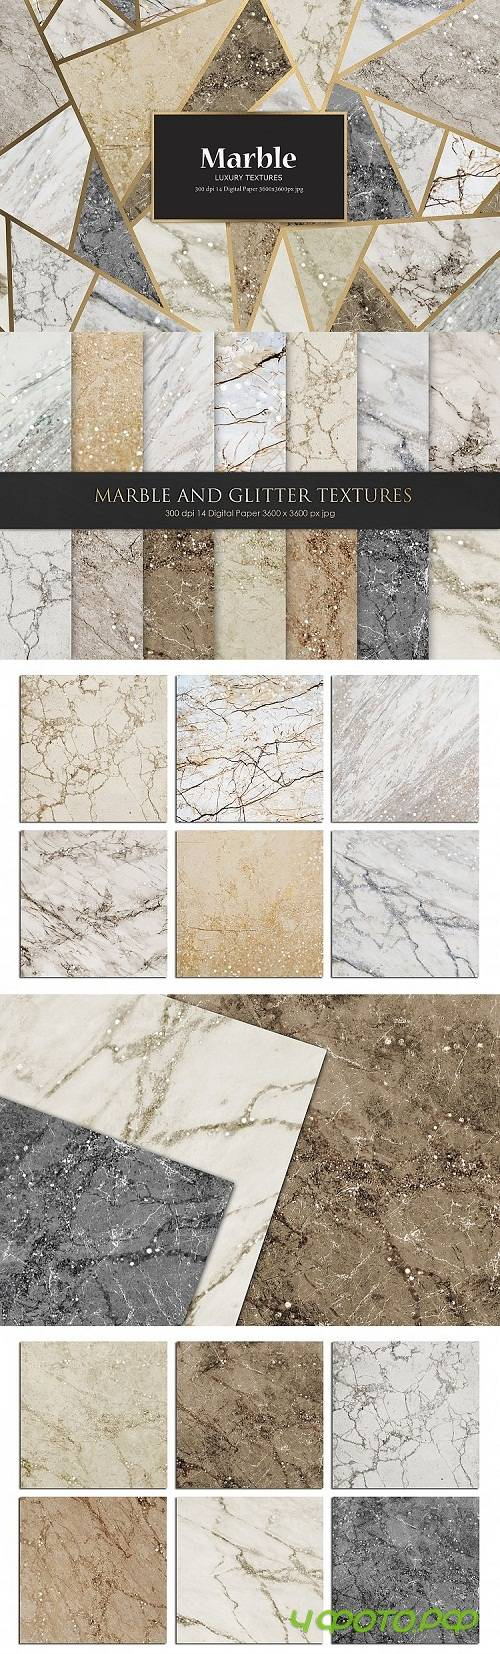 Marble and Glitter Textures, Backgrounds - 177120